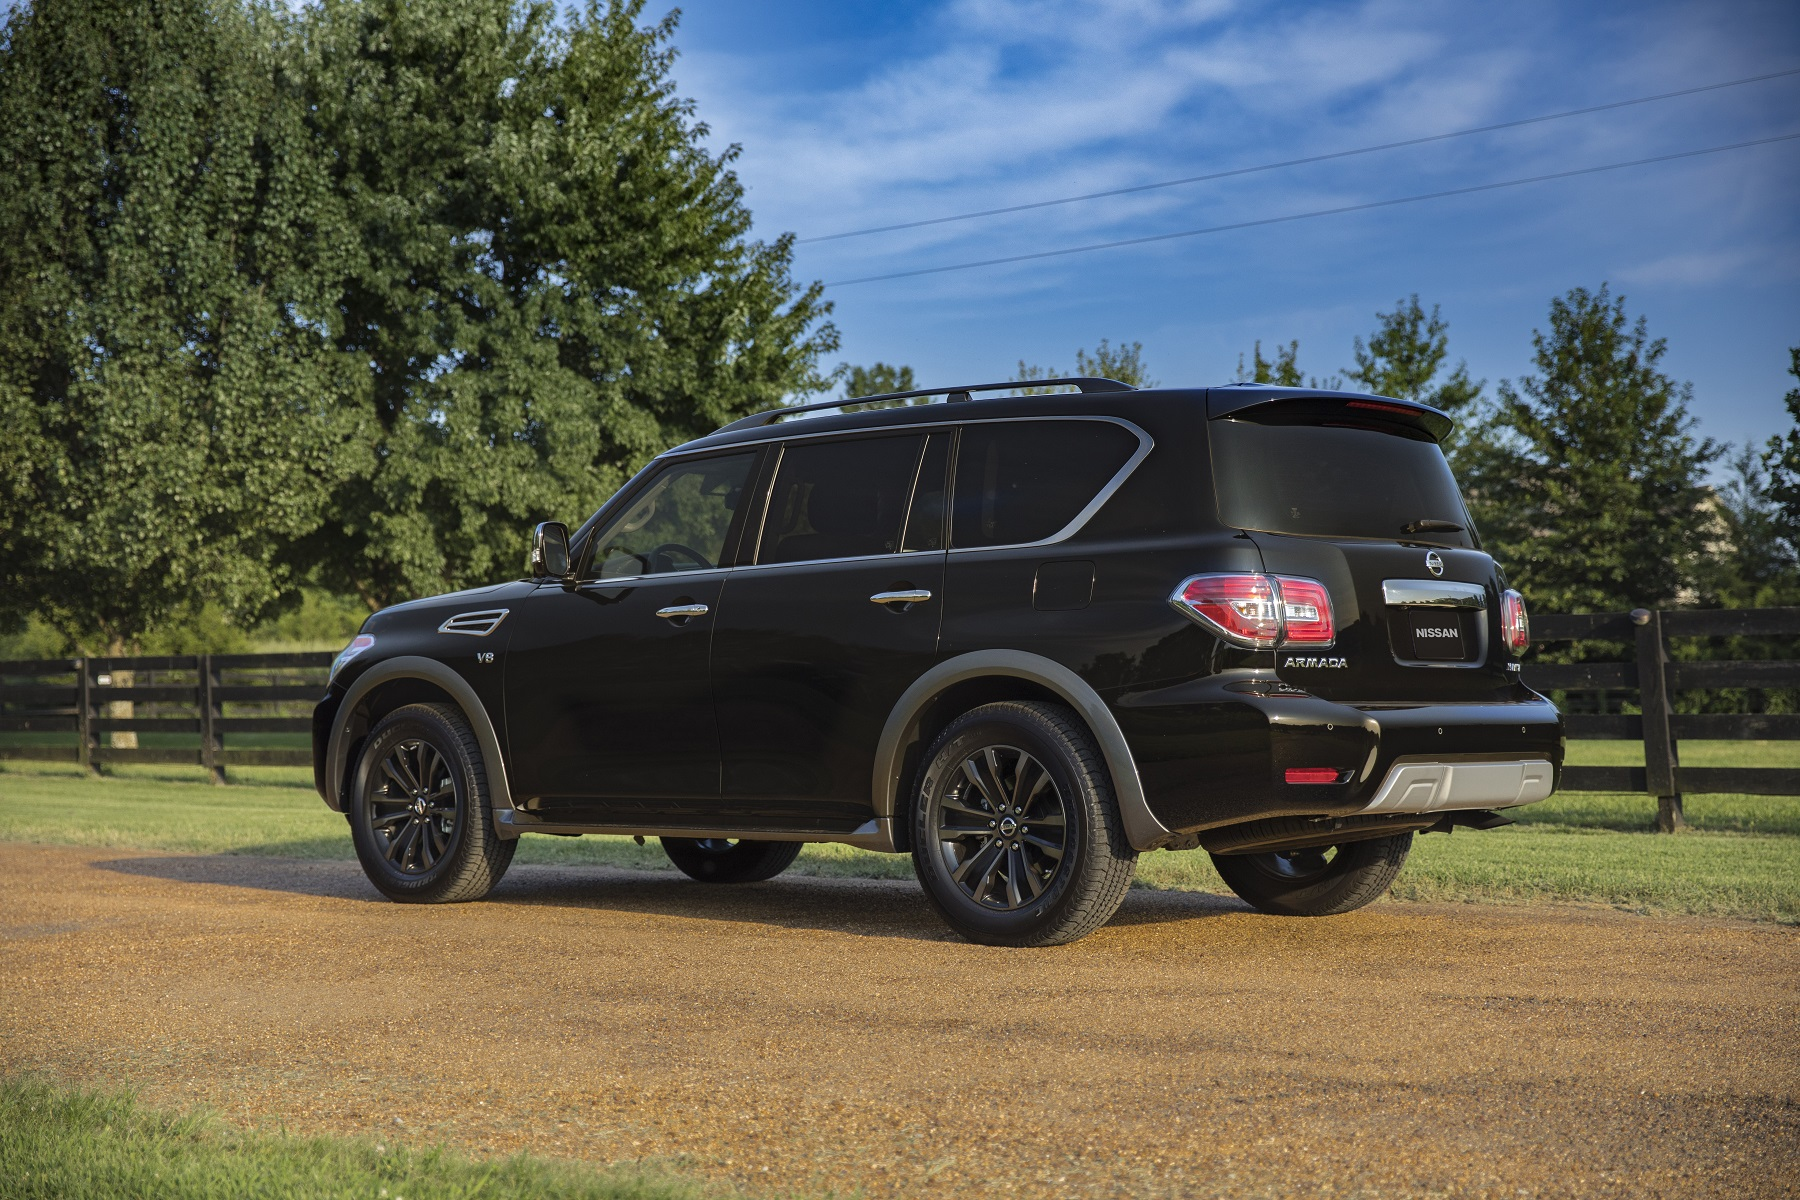 2018 Nissan Armada: Off-Road Ready, Big V-8 Power - Get Off the Road